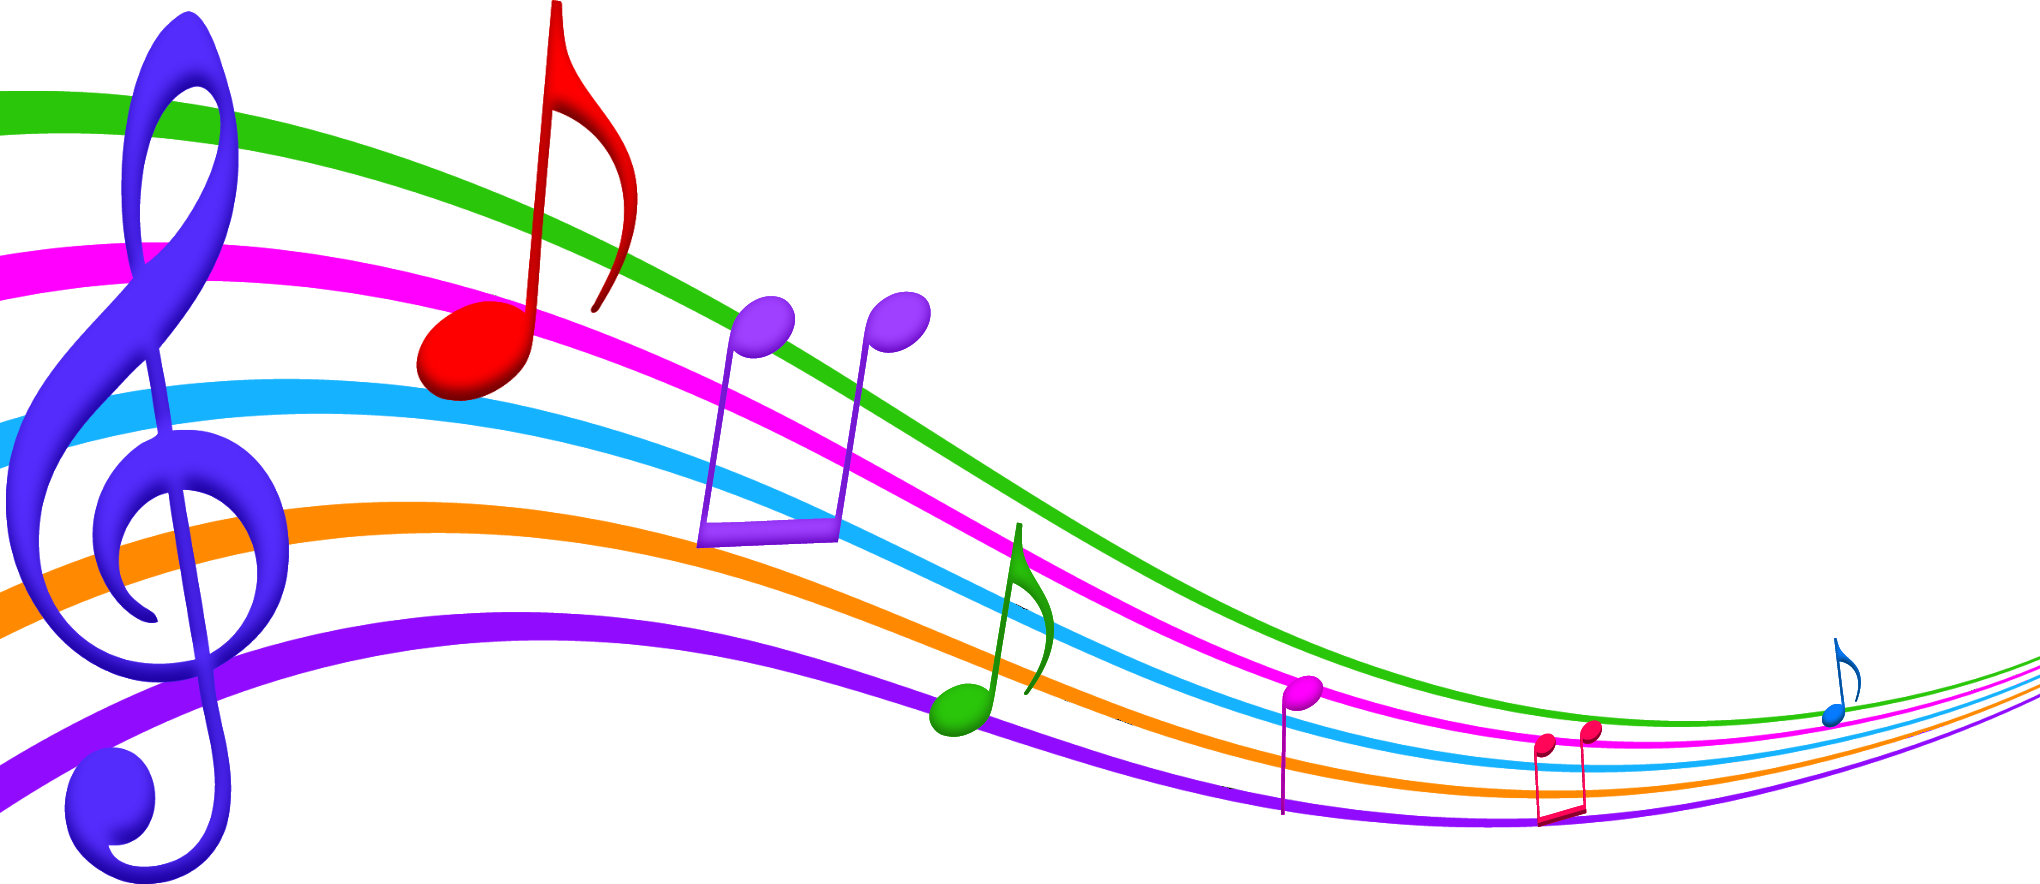 png file format of music notes no background